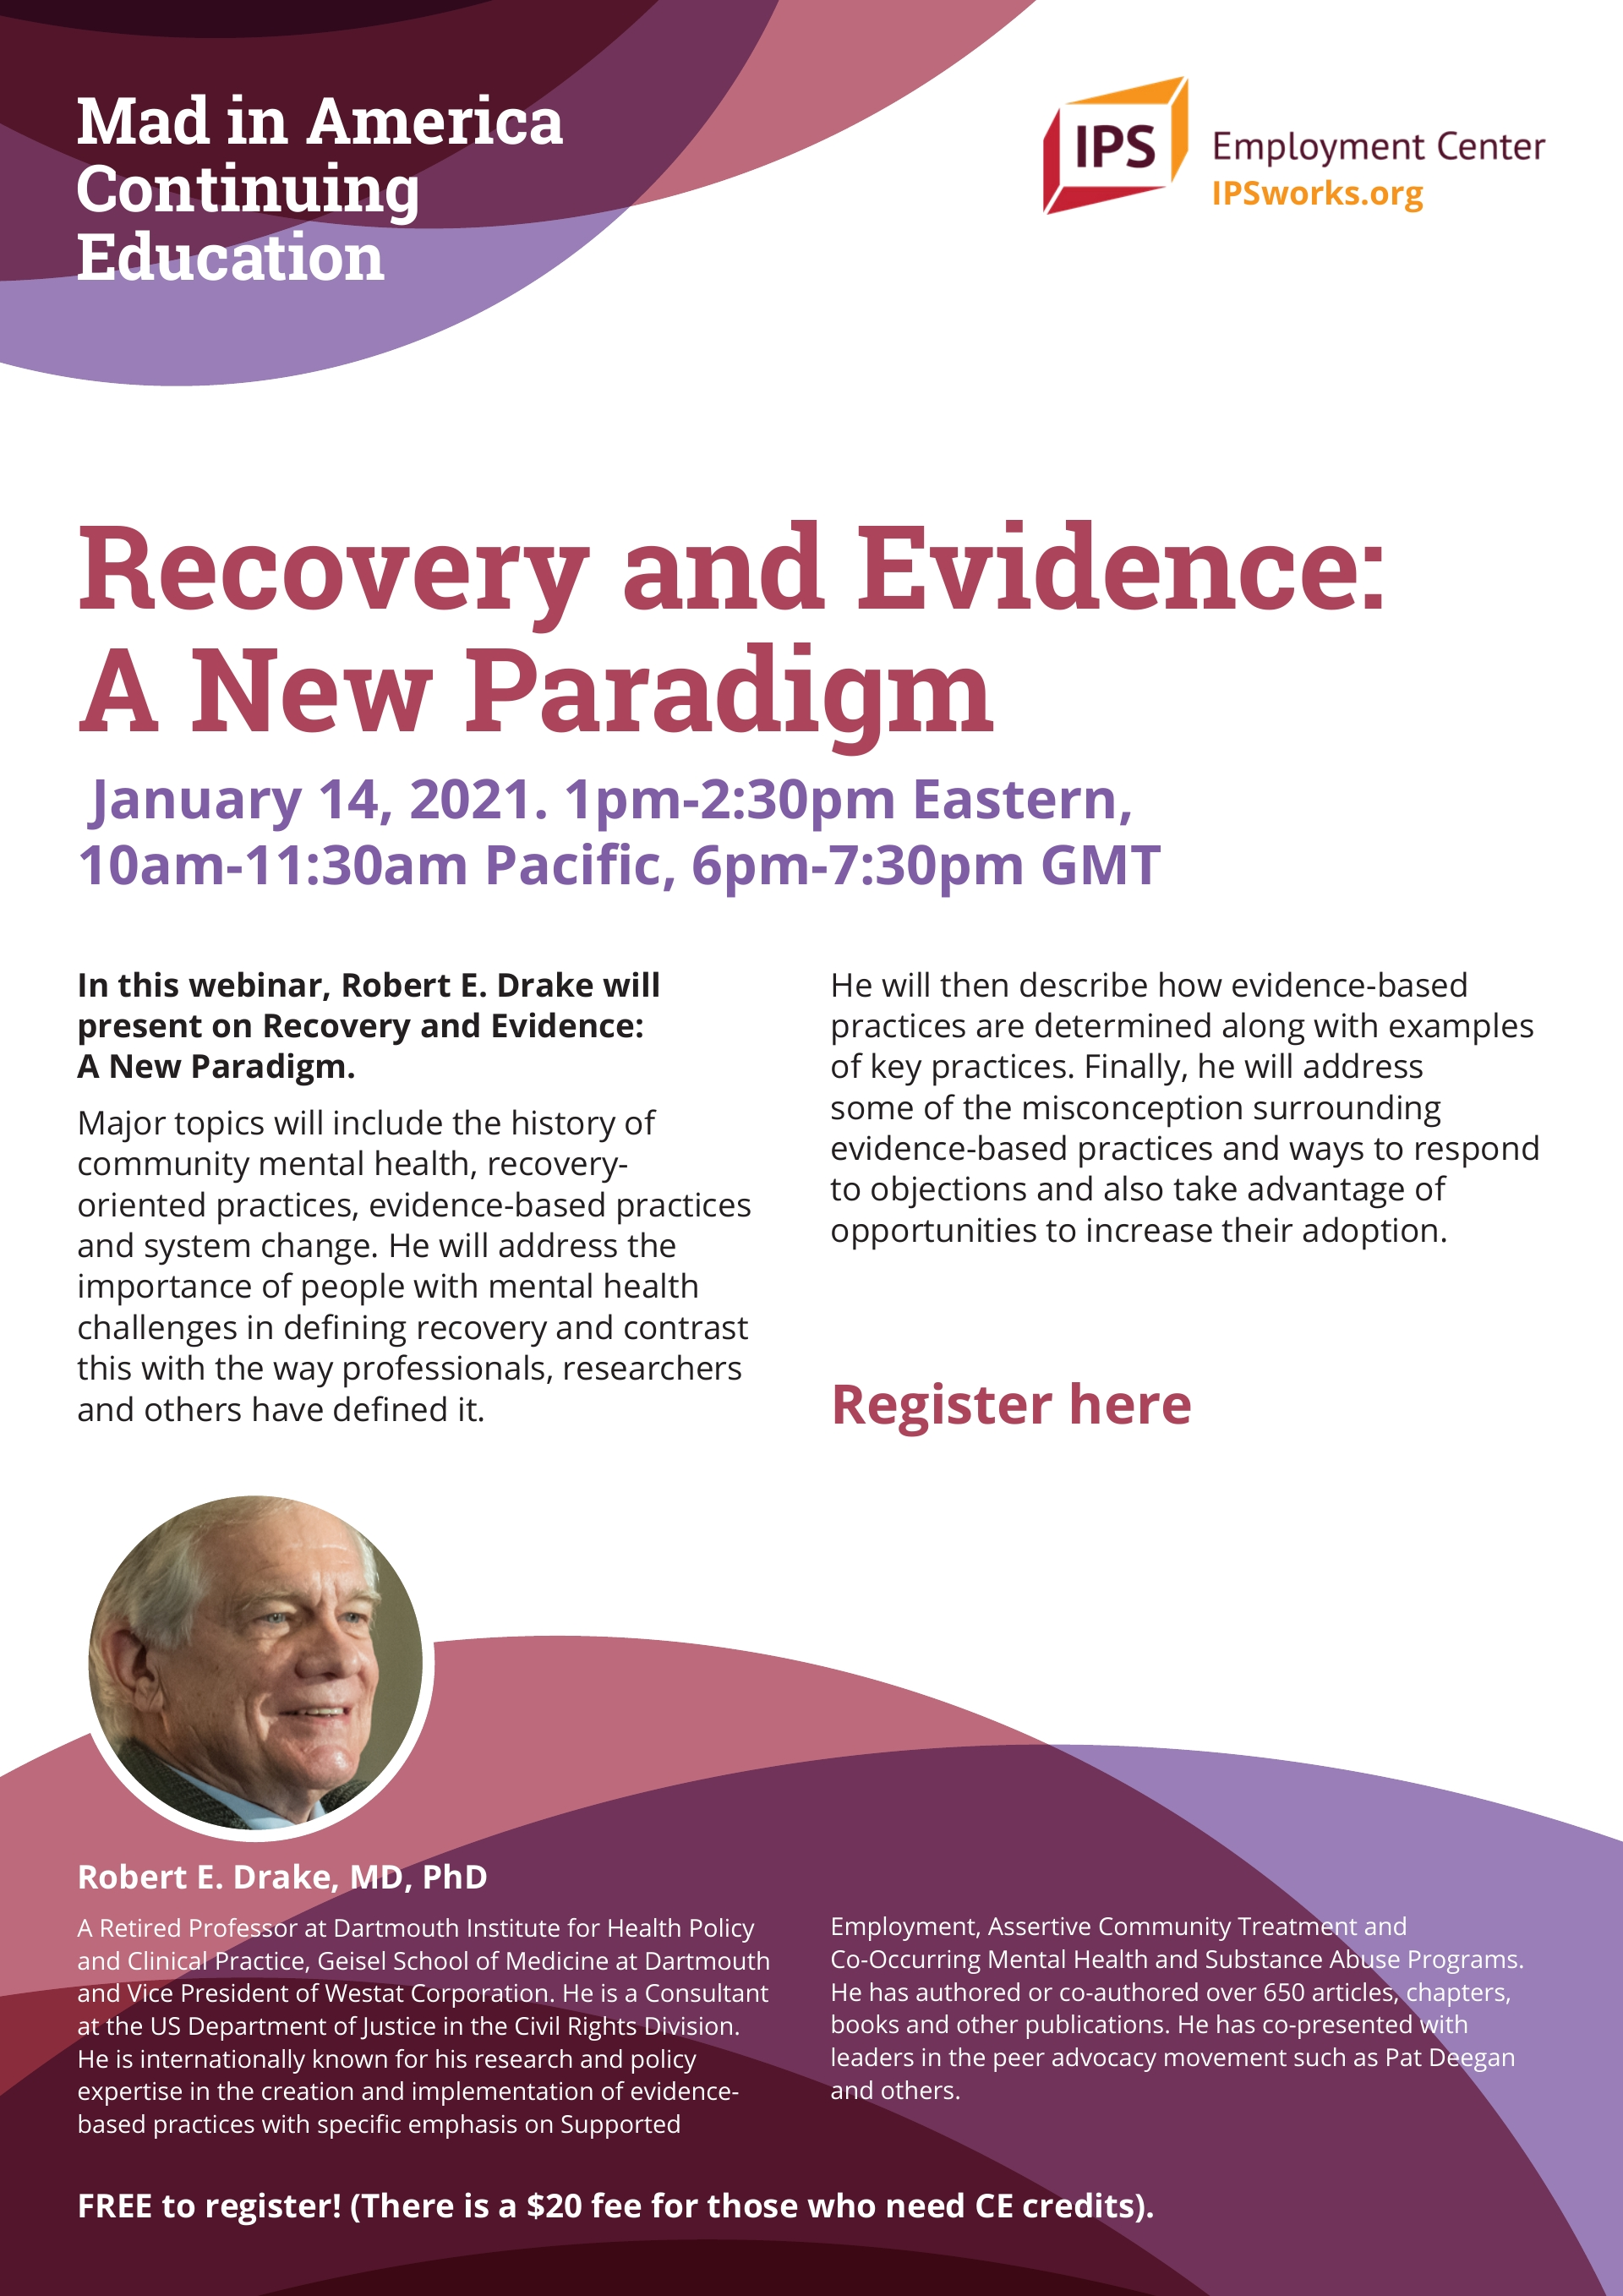 Recovery and Evidence: A New Paradigm January 14, 2021. 1pm-2:30pm